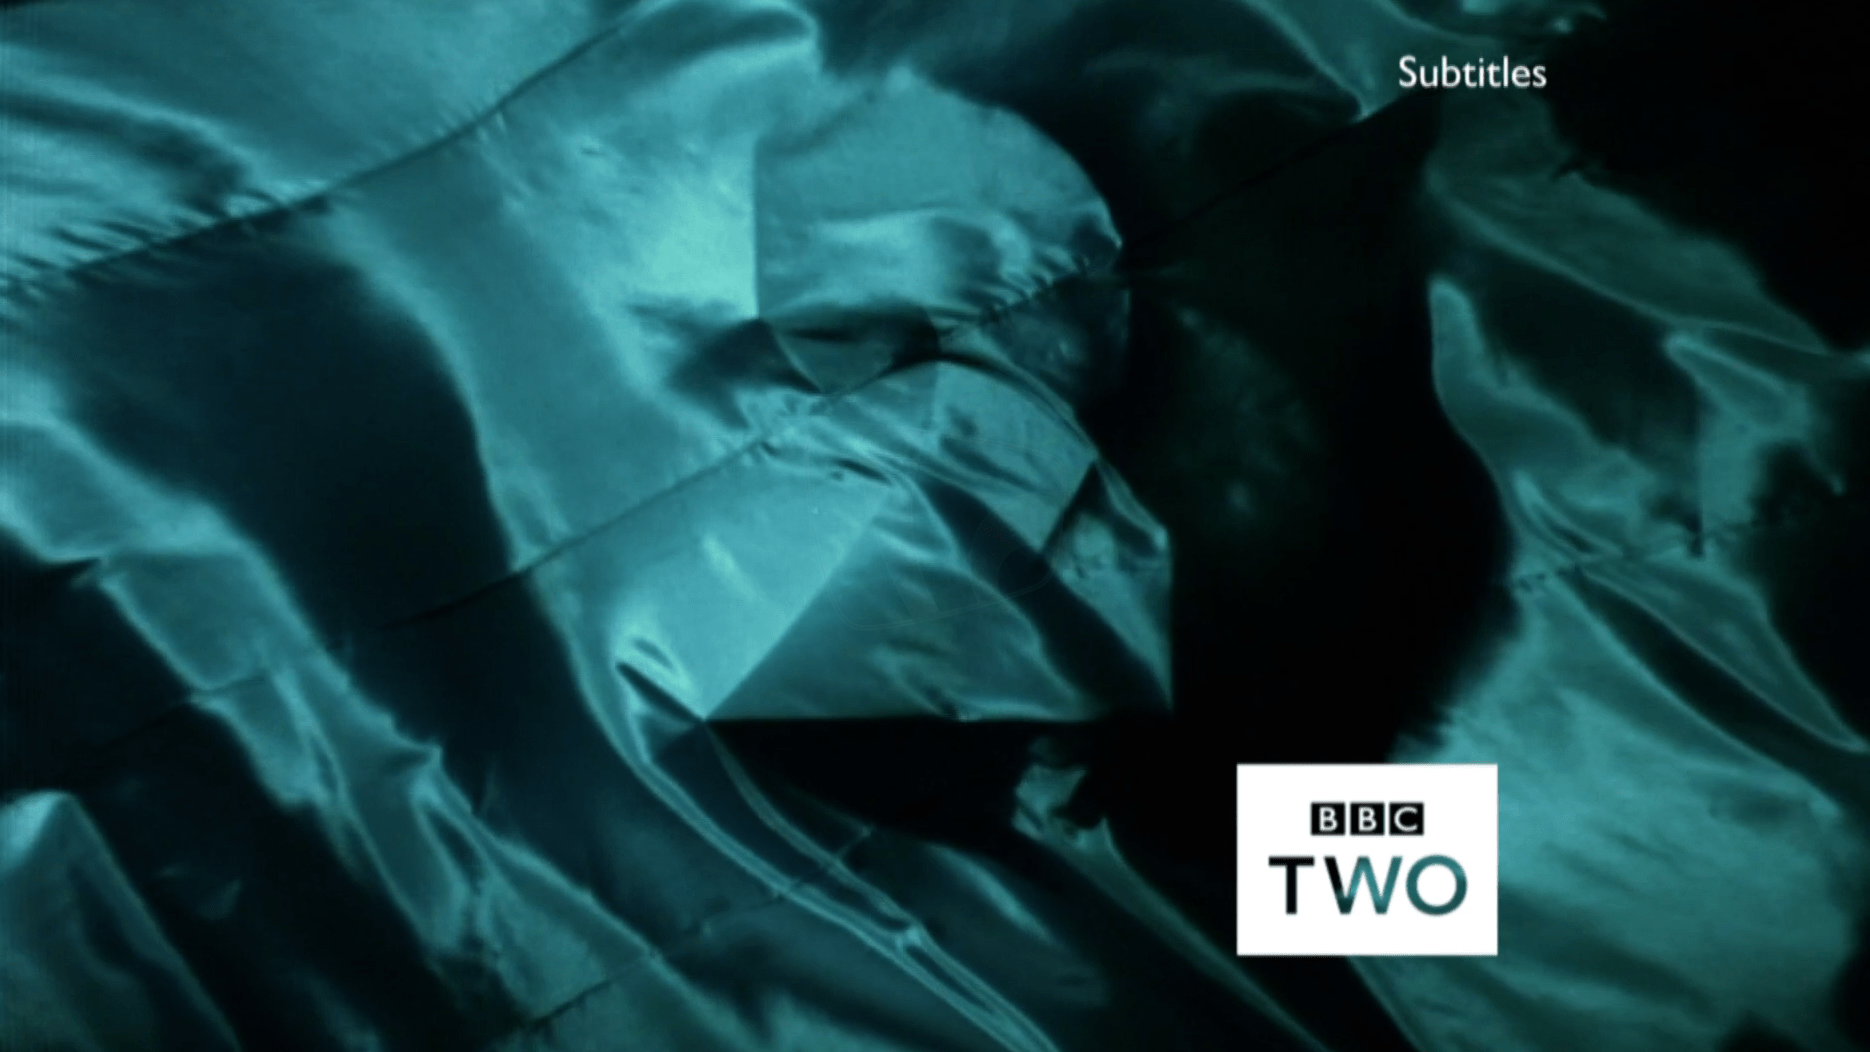 PICTURED: BBC Two ident - Silk.